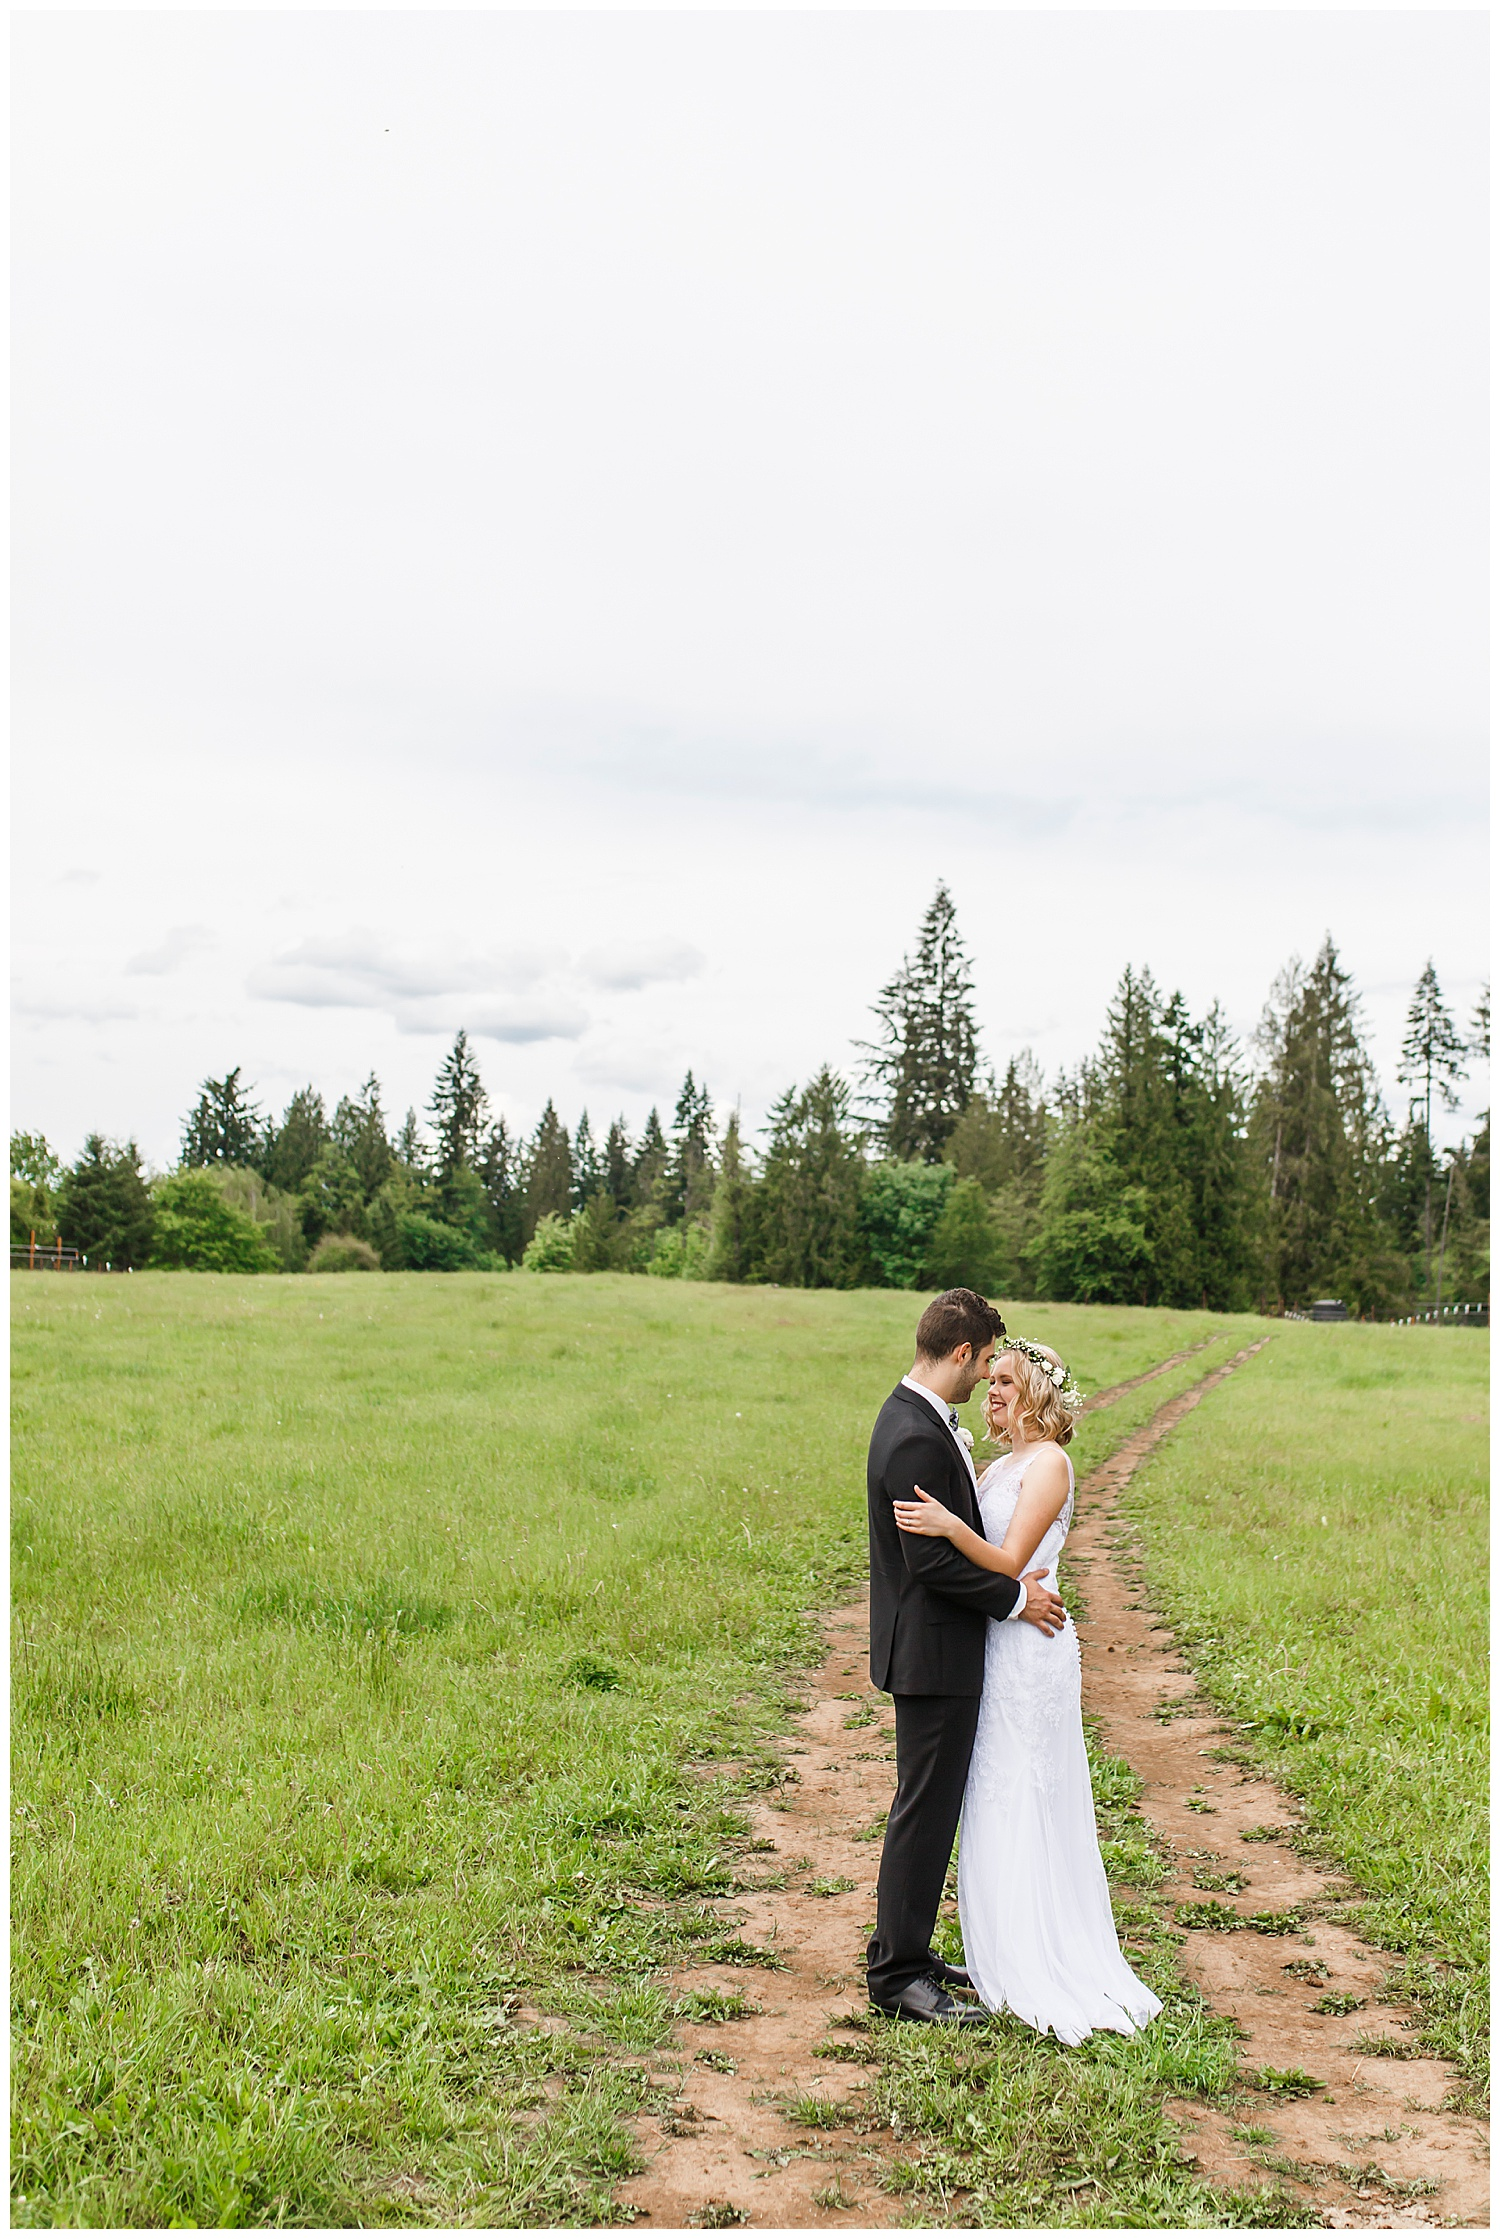 Brush_Prairie_Washington_Wedding_May_Farm_Backyard_Family_Photographer_Conzatti_0019.jpg